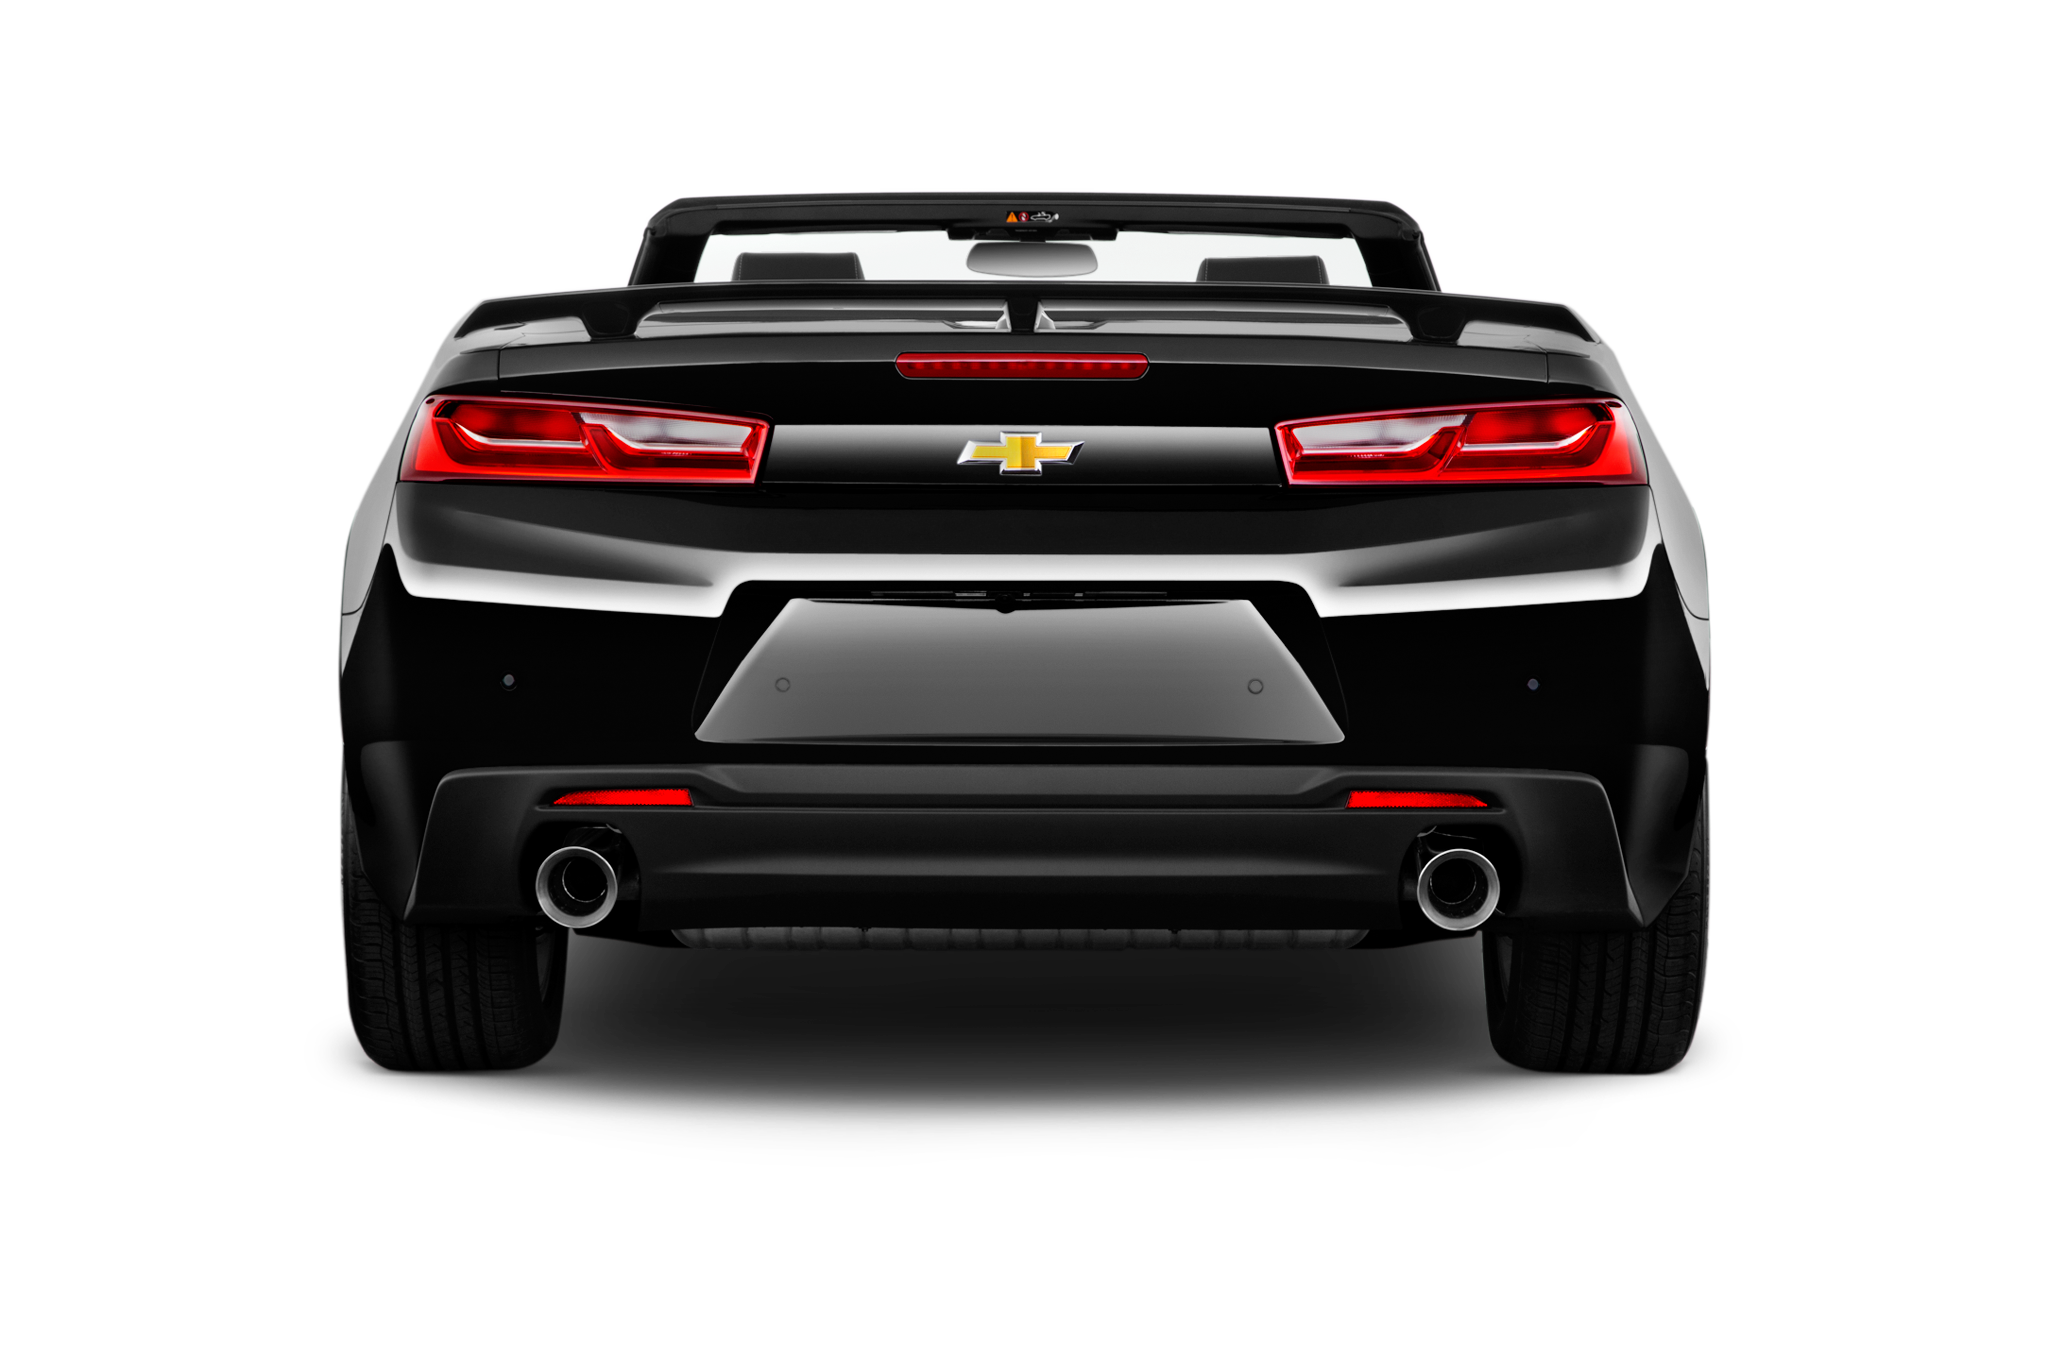 Rear view of car clipart jpg black and white stock Best Chevrolet Camaros of SEMA 2017 | Automobile Magazine jpg black and white stock